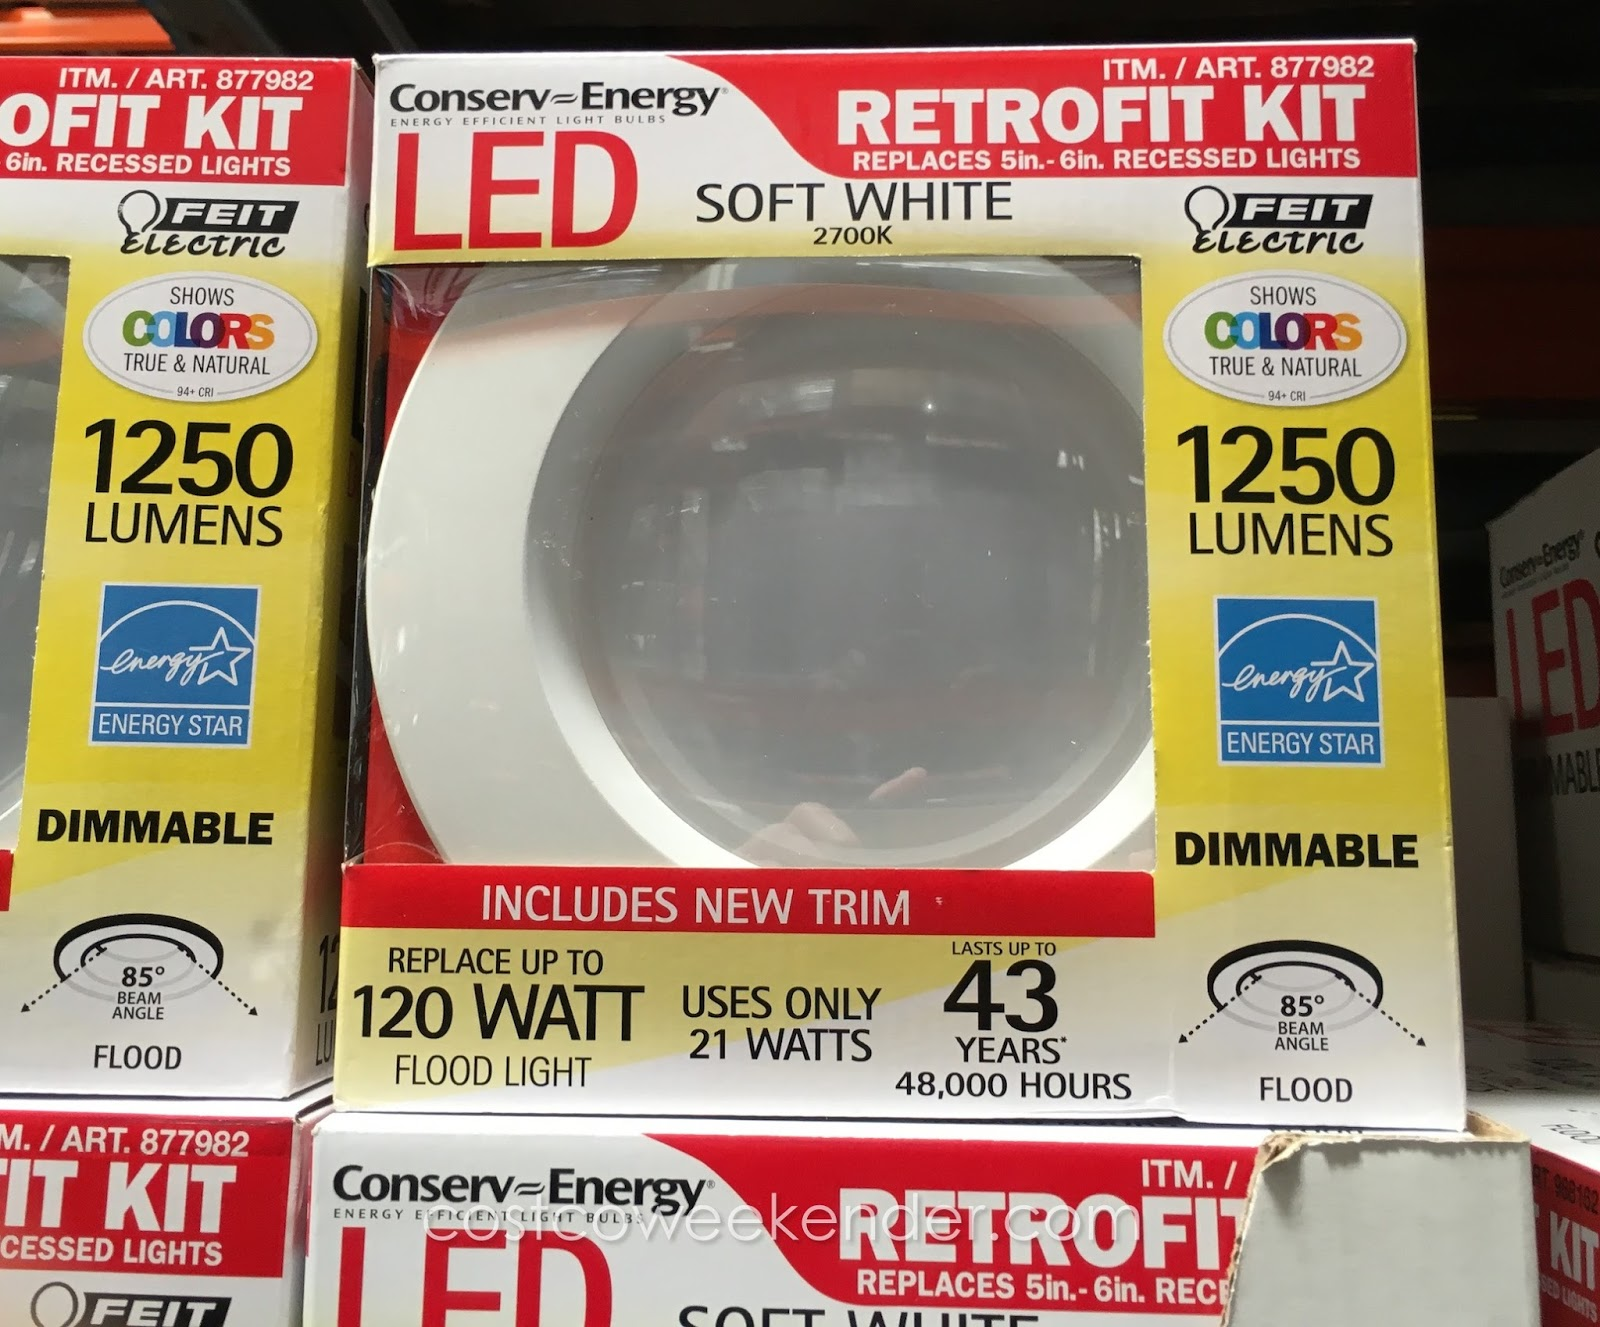 feit-led-dimmable-retrofit-kit-costco.jp